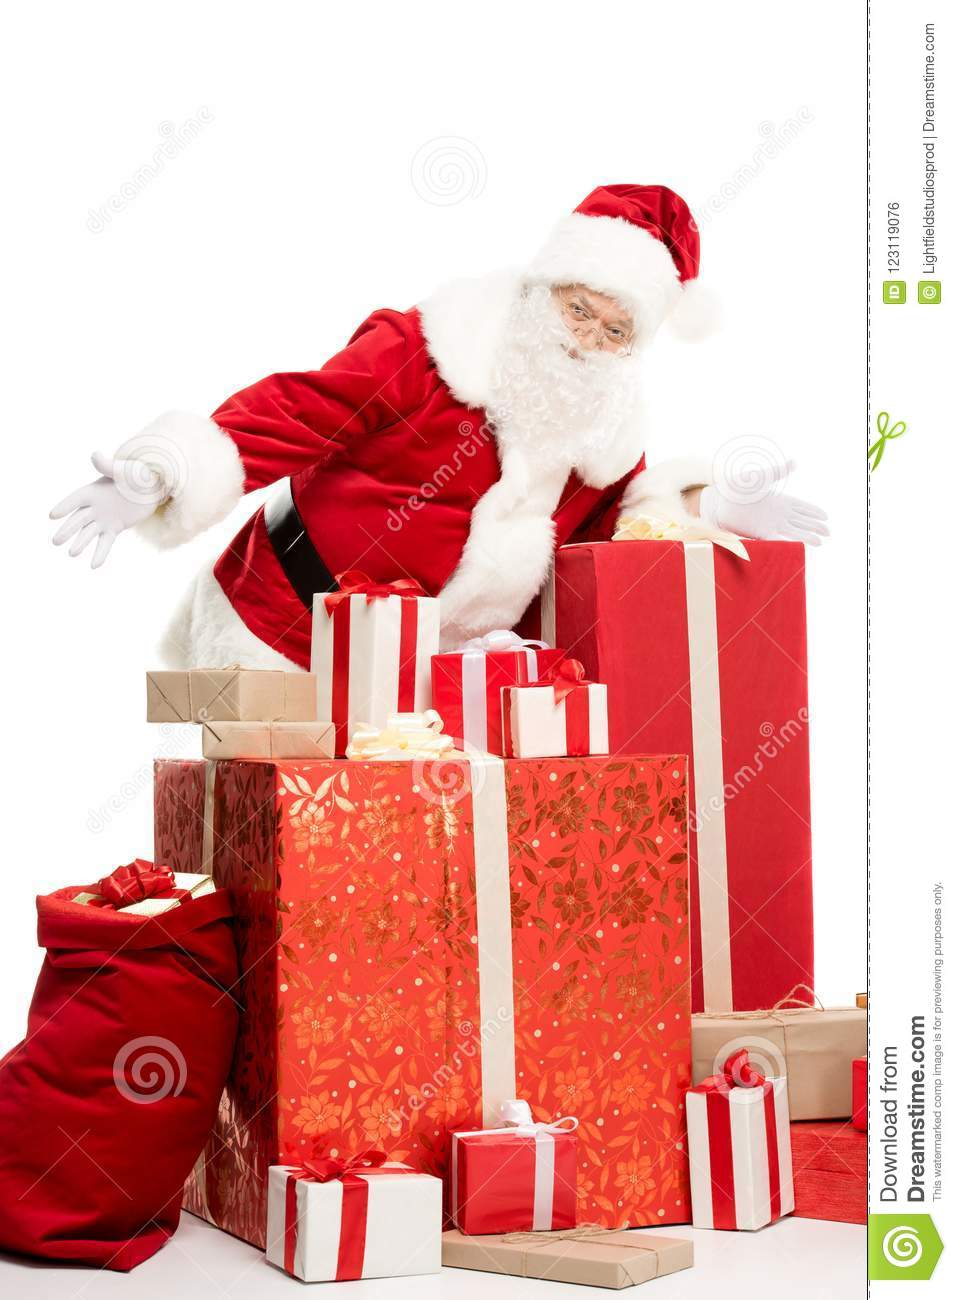 Happy Santa Claus Standing With A Pile Of Christmas Gifts On White